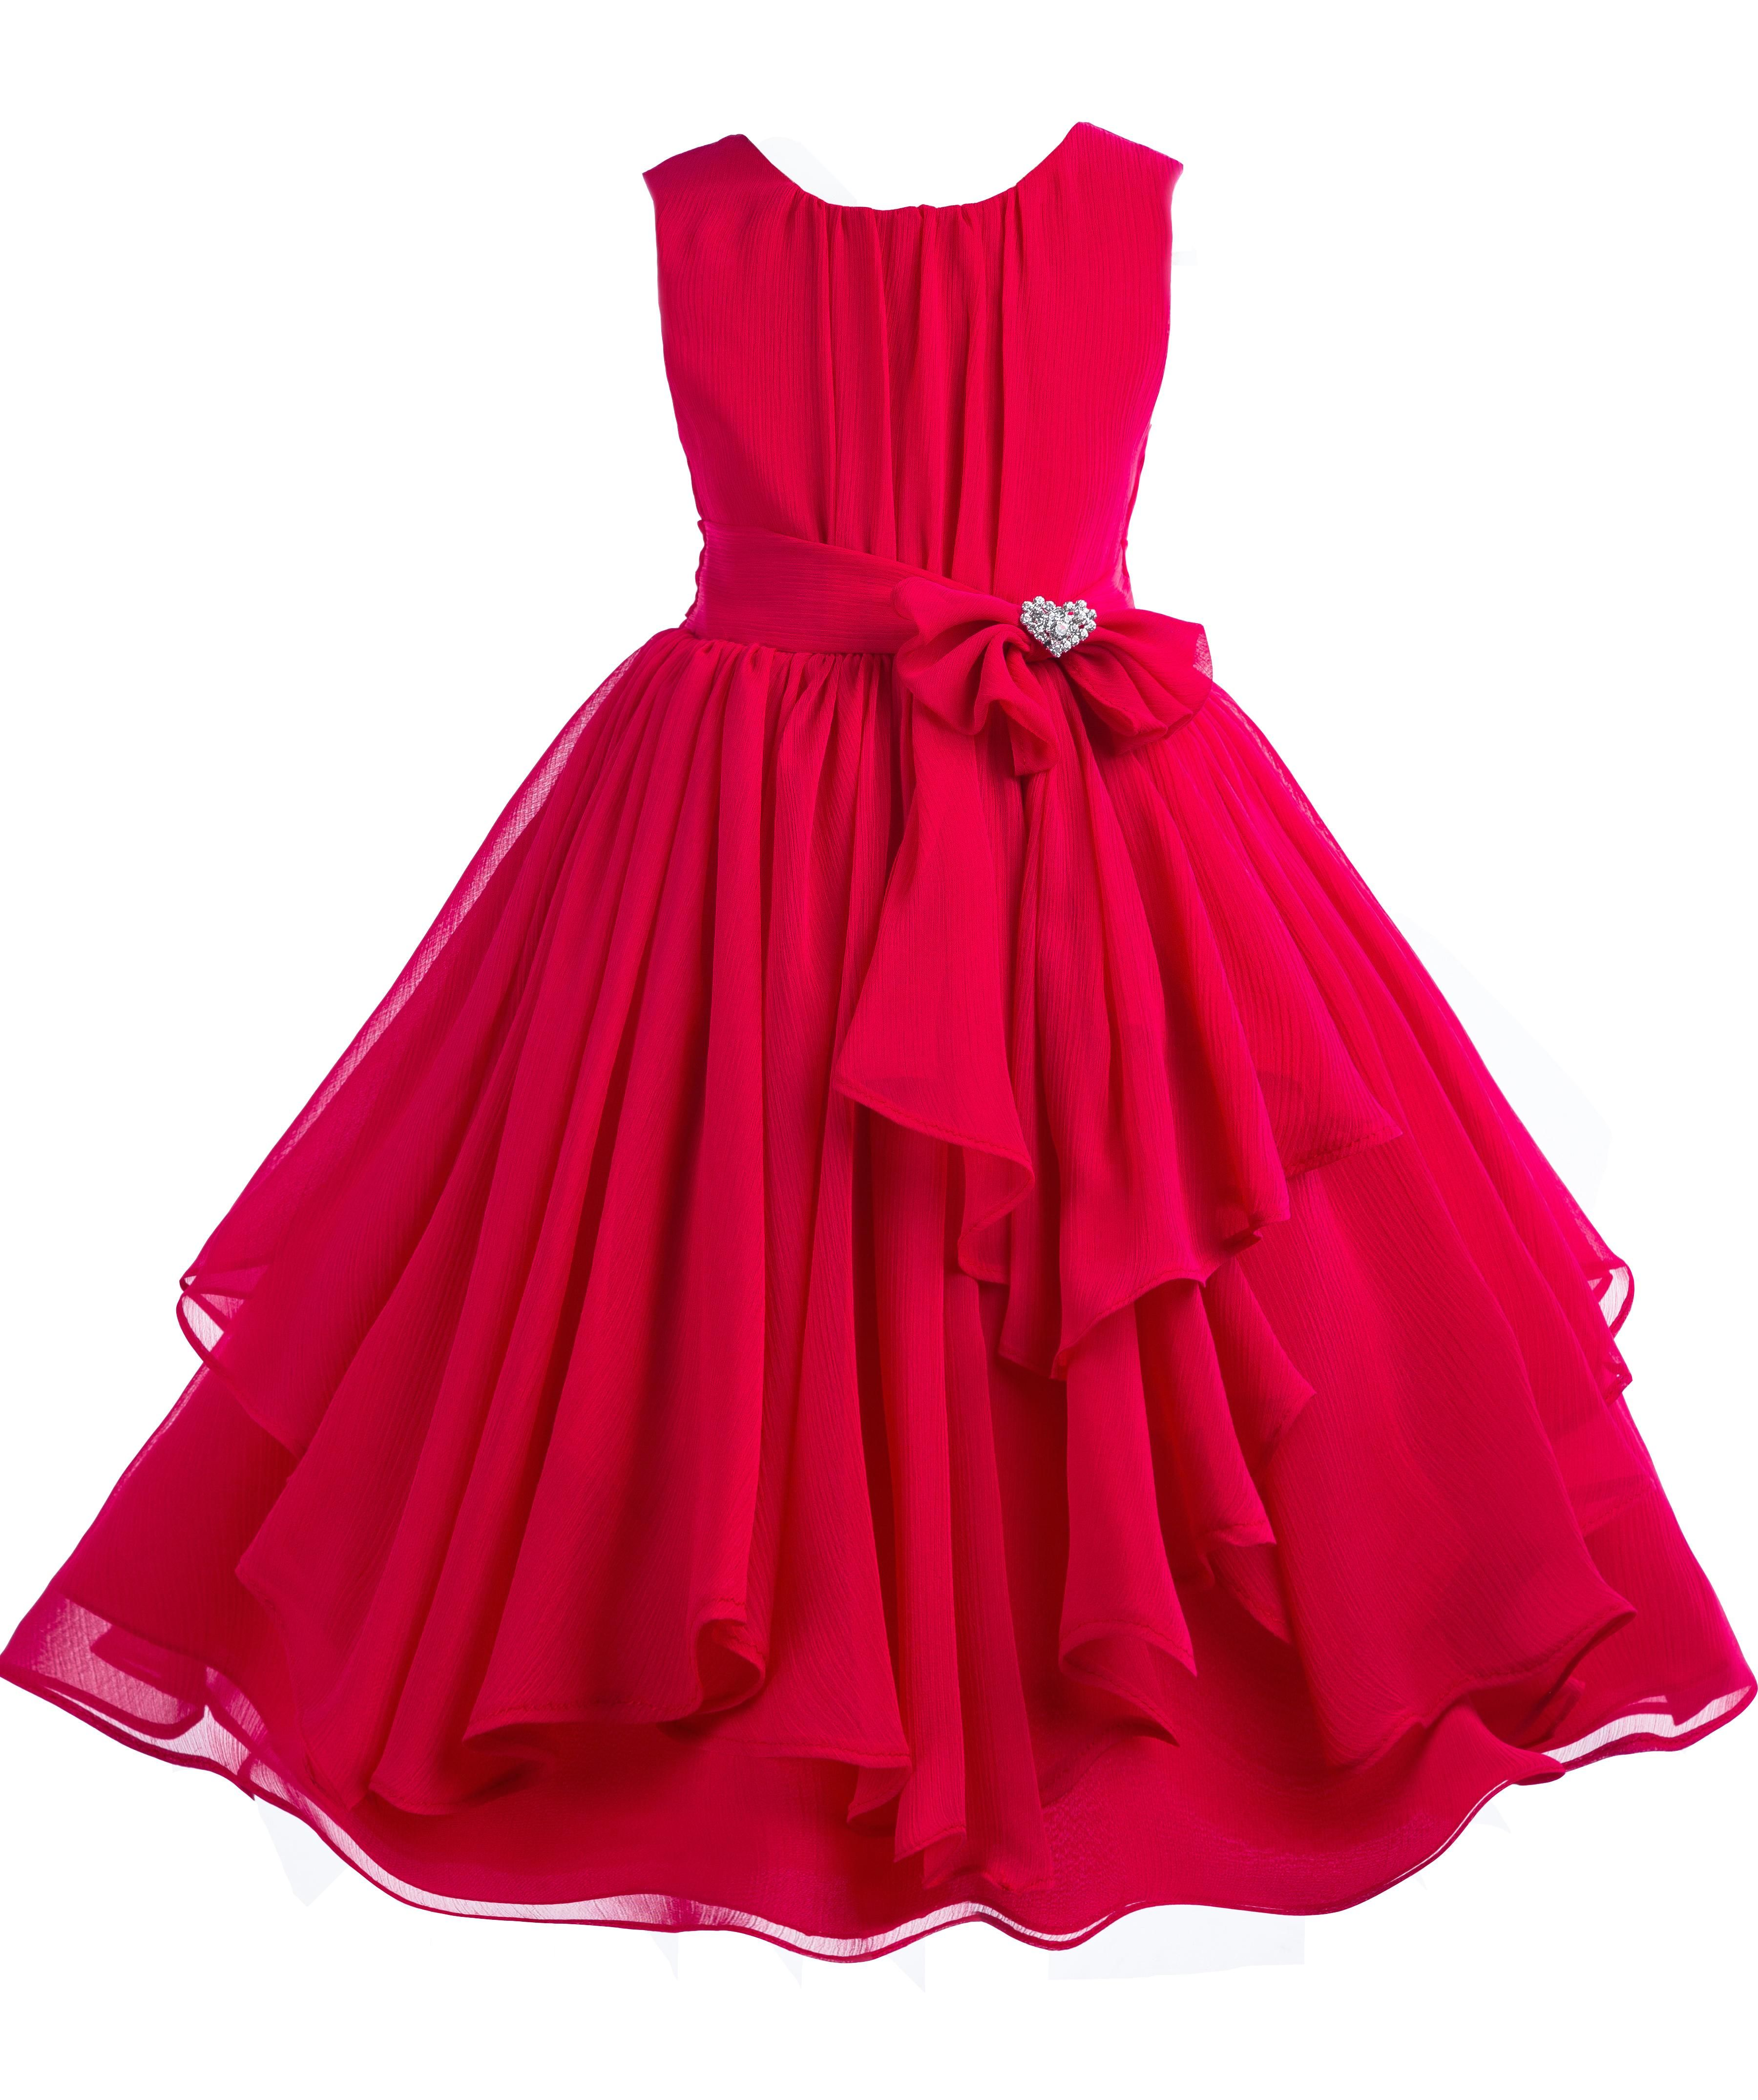 Ekidsbridal Elegant Yoryu Chiffon Christmas Red Ruched Bodice Rhinestone Flower Girl Dress Toddler Bridesmaid 162s